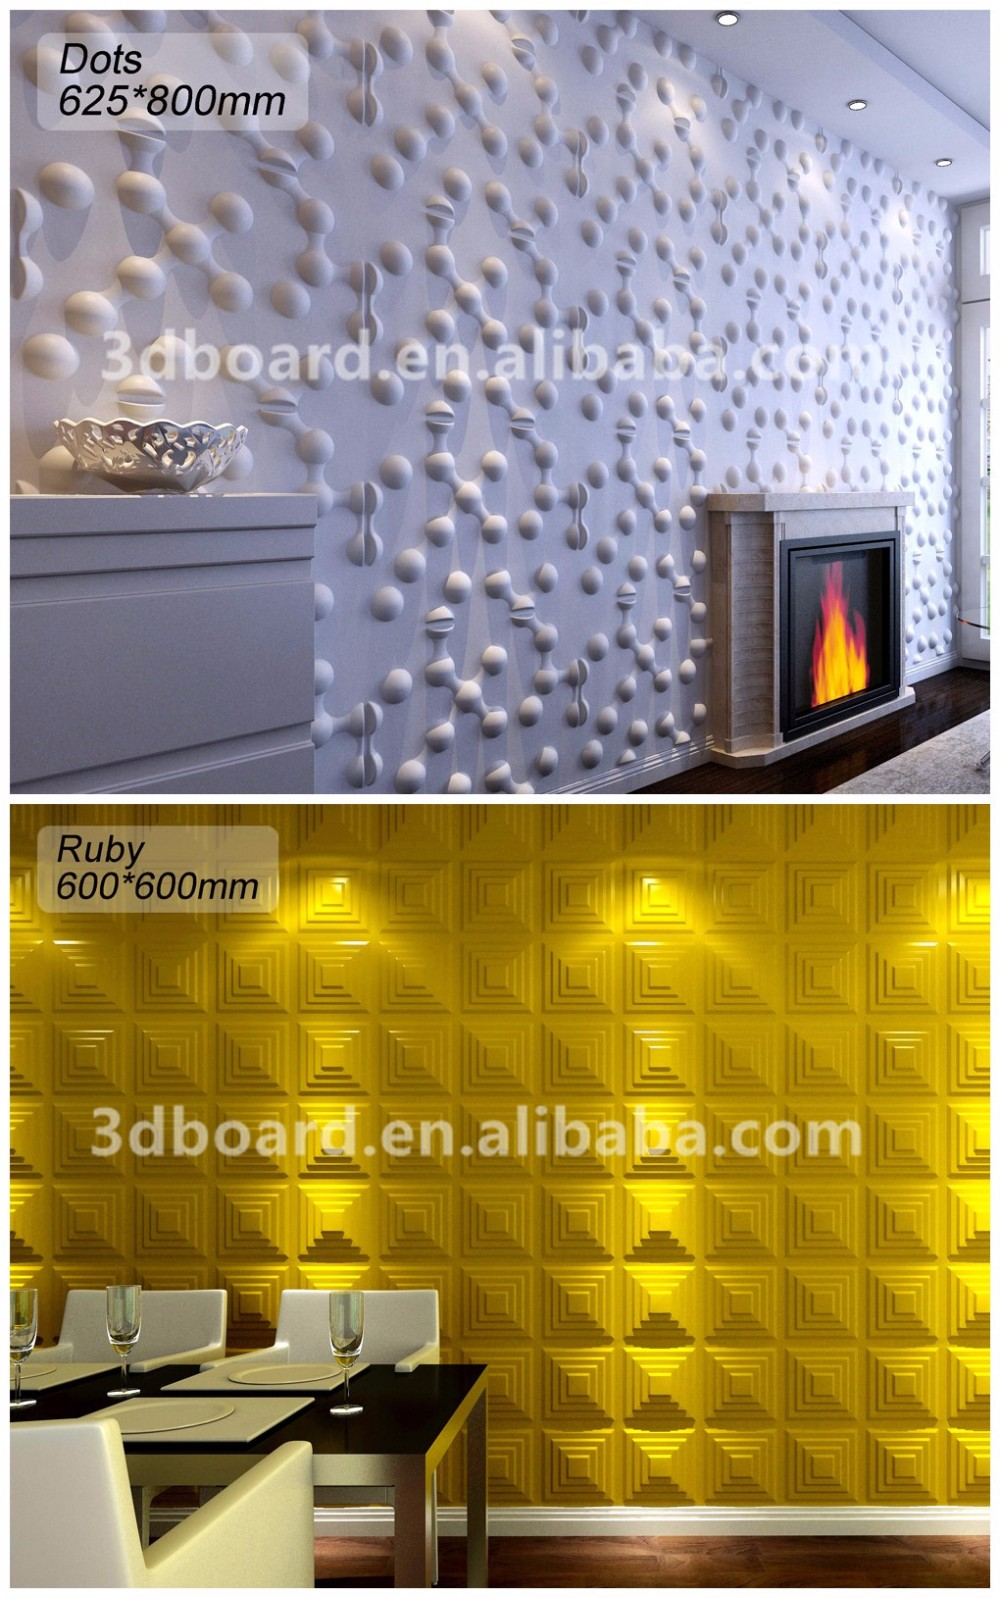 Waterproof Wall Art 3d Wall Panel For Japanese Restaurant Decoration ...